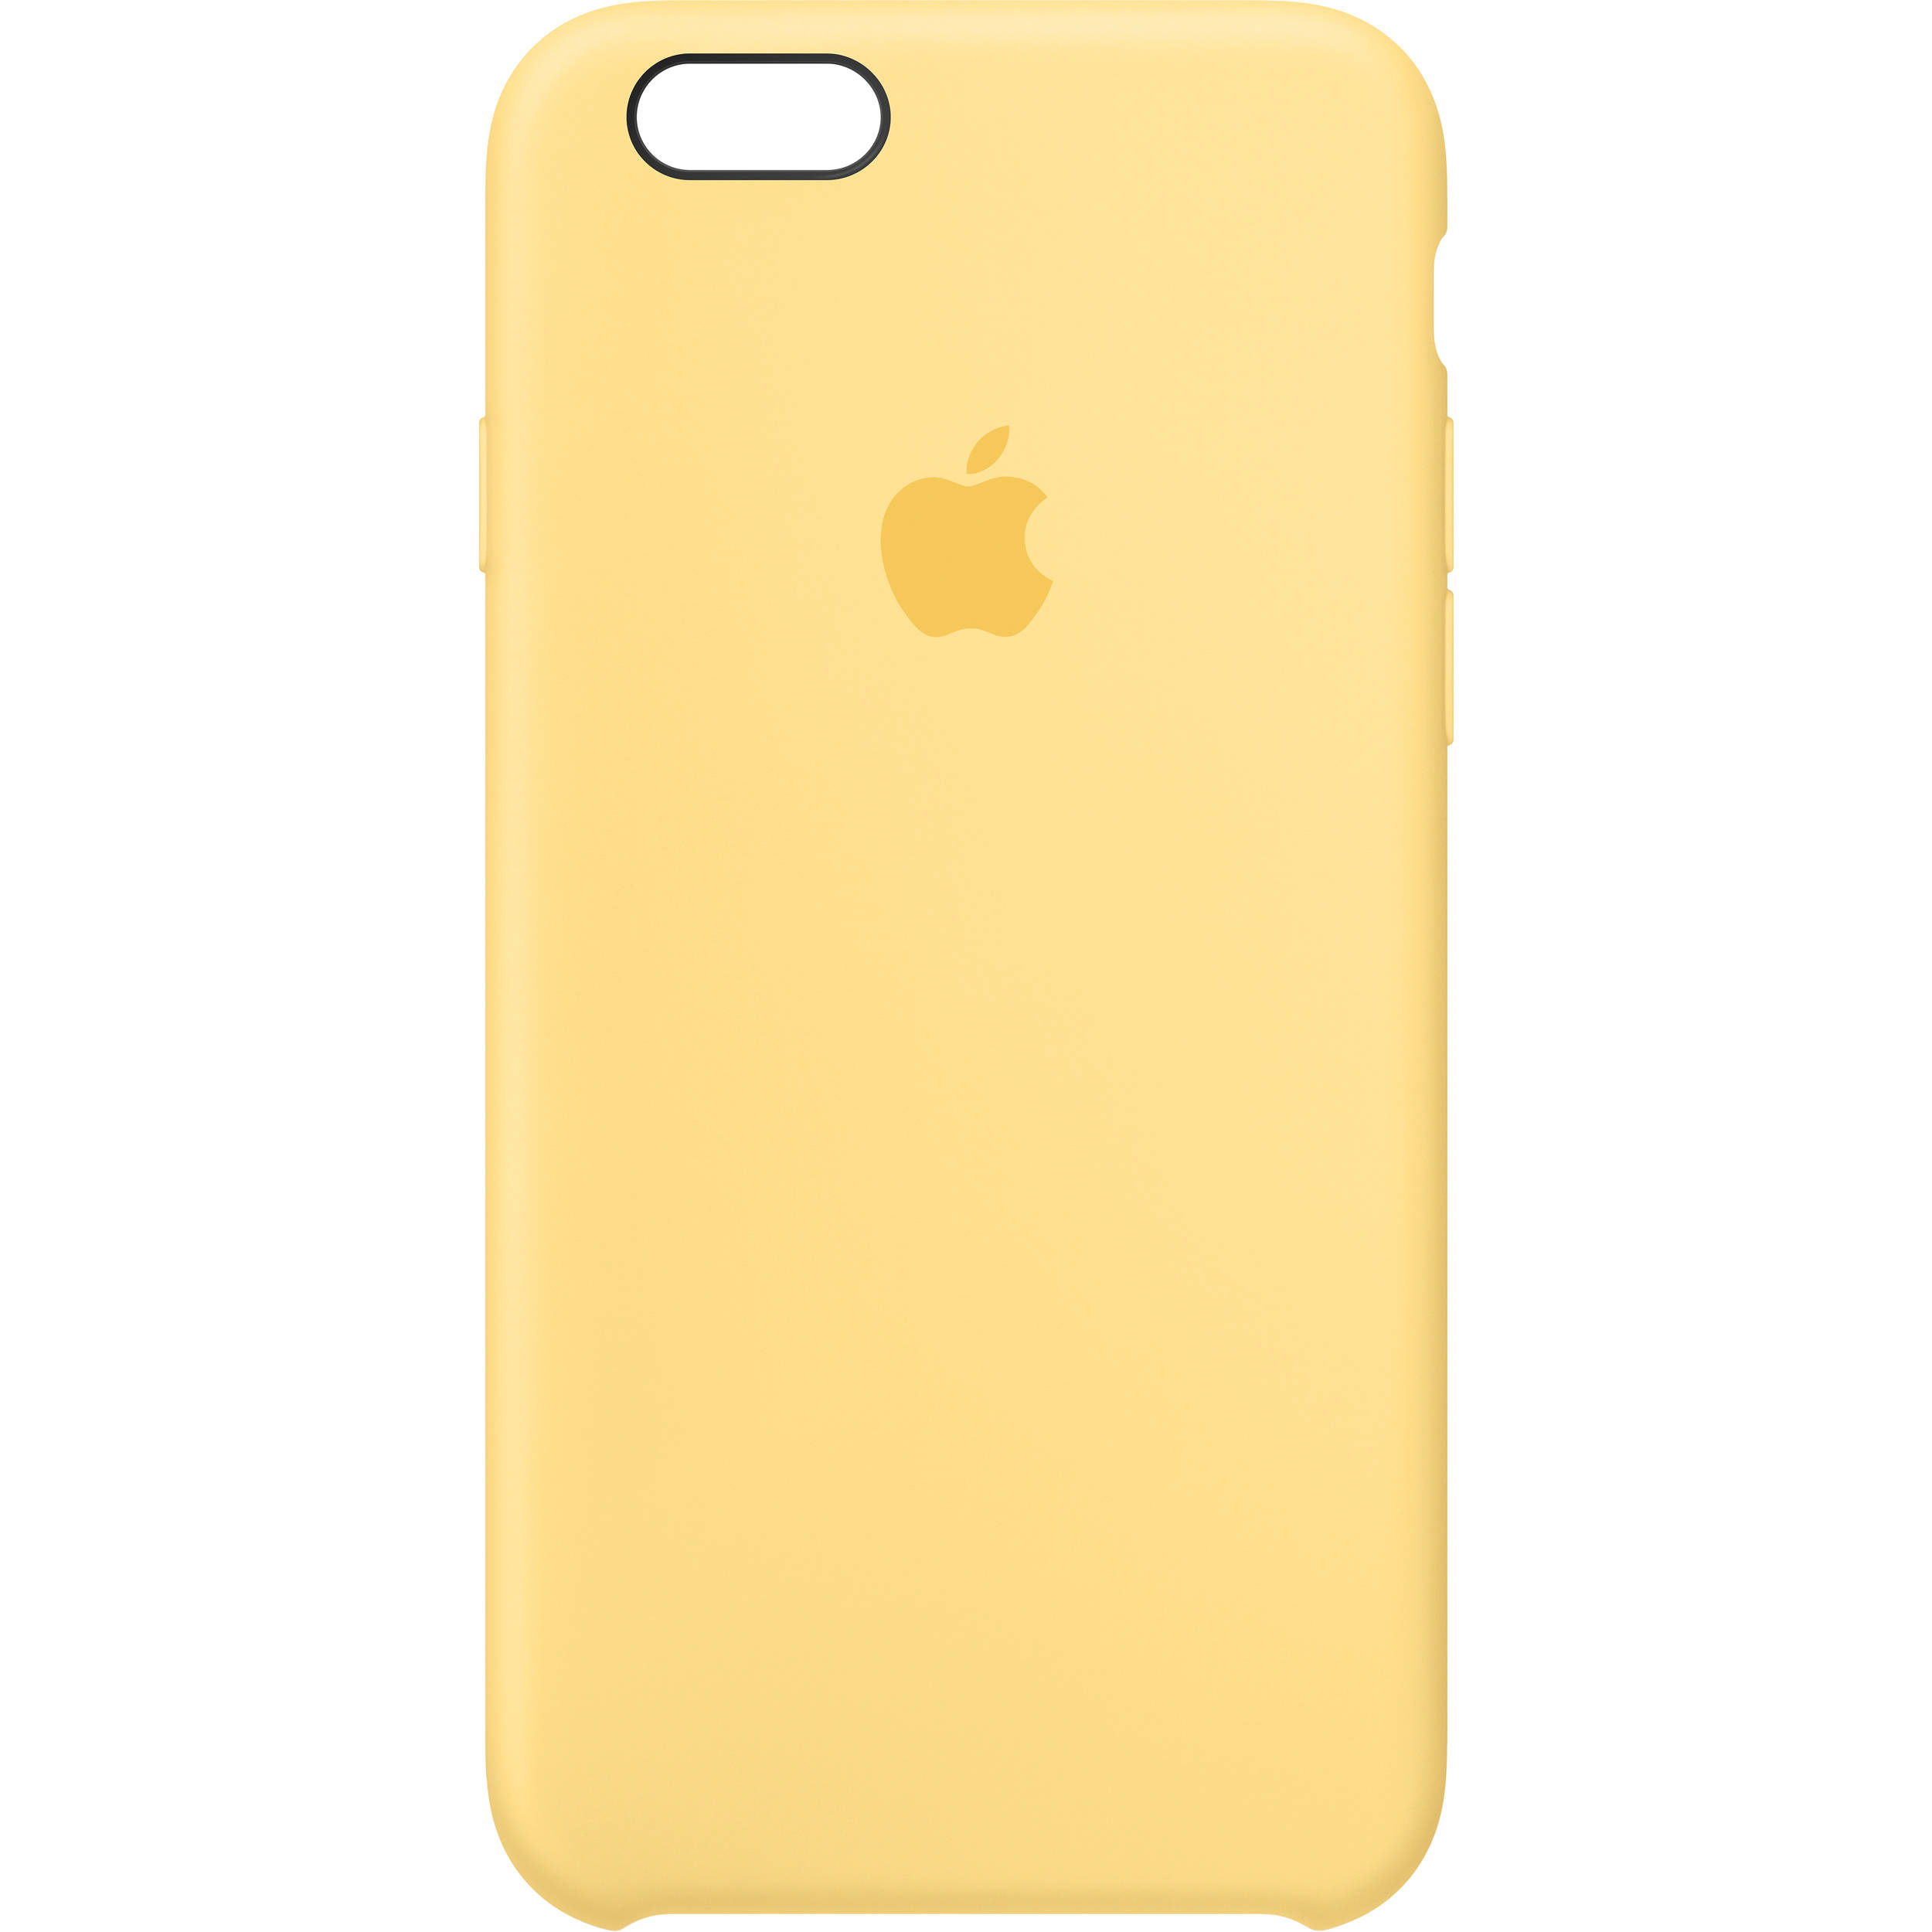 wholesale dealer 26368 4f11b Apple iPhone 6/6s Silicone Case (Yellow)